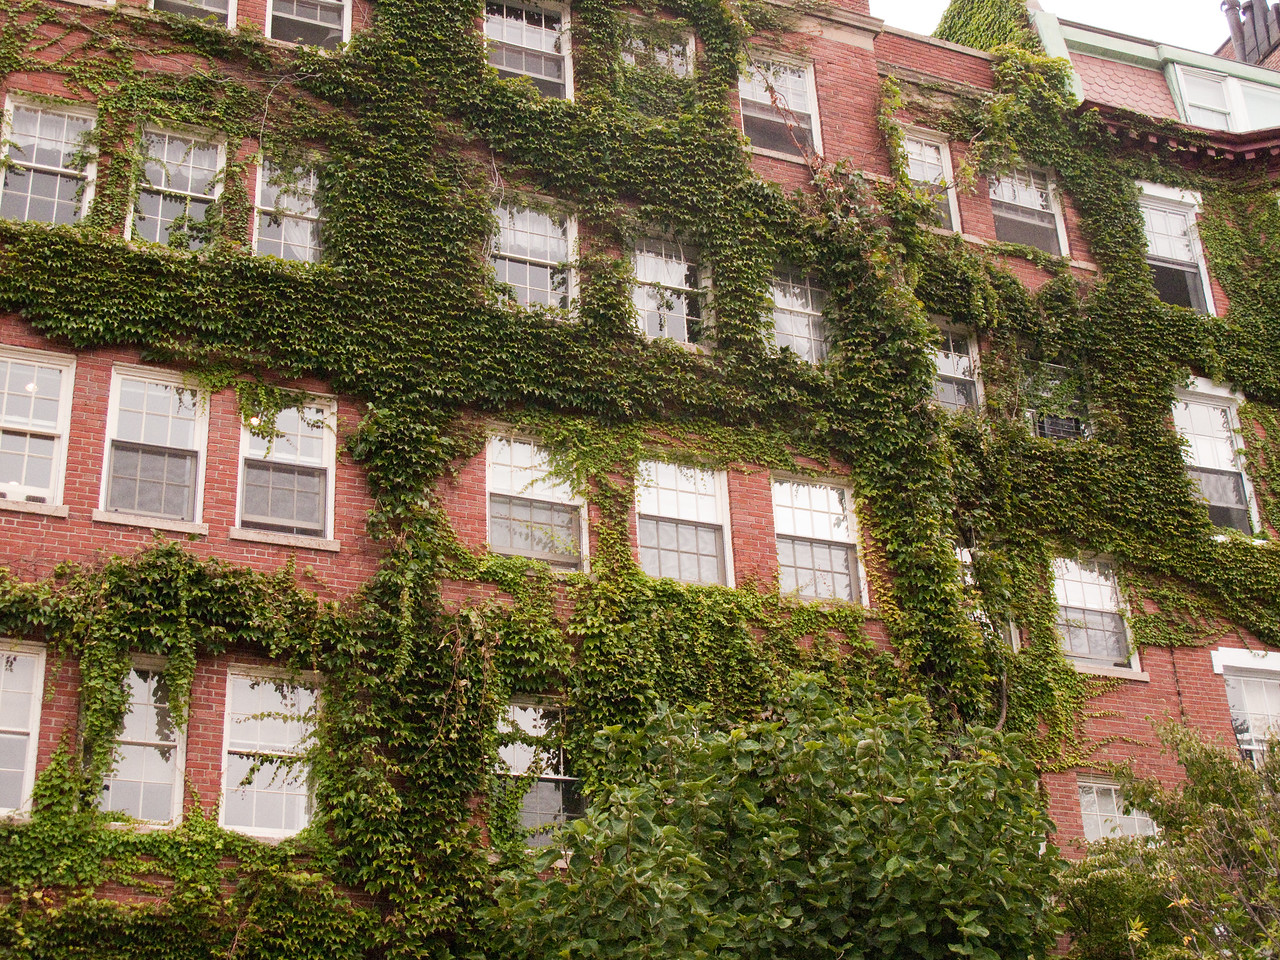 Ivy attack in Boston